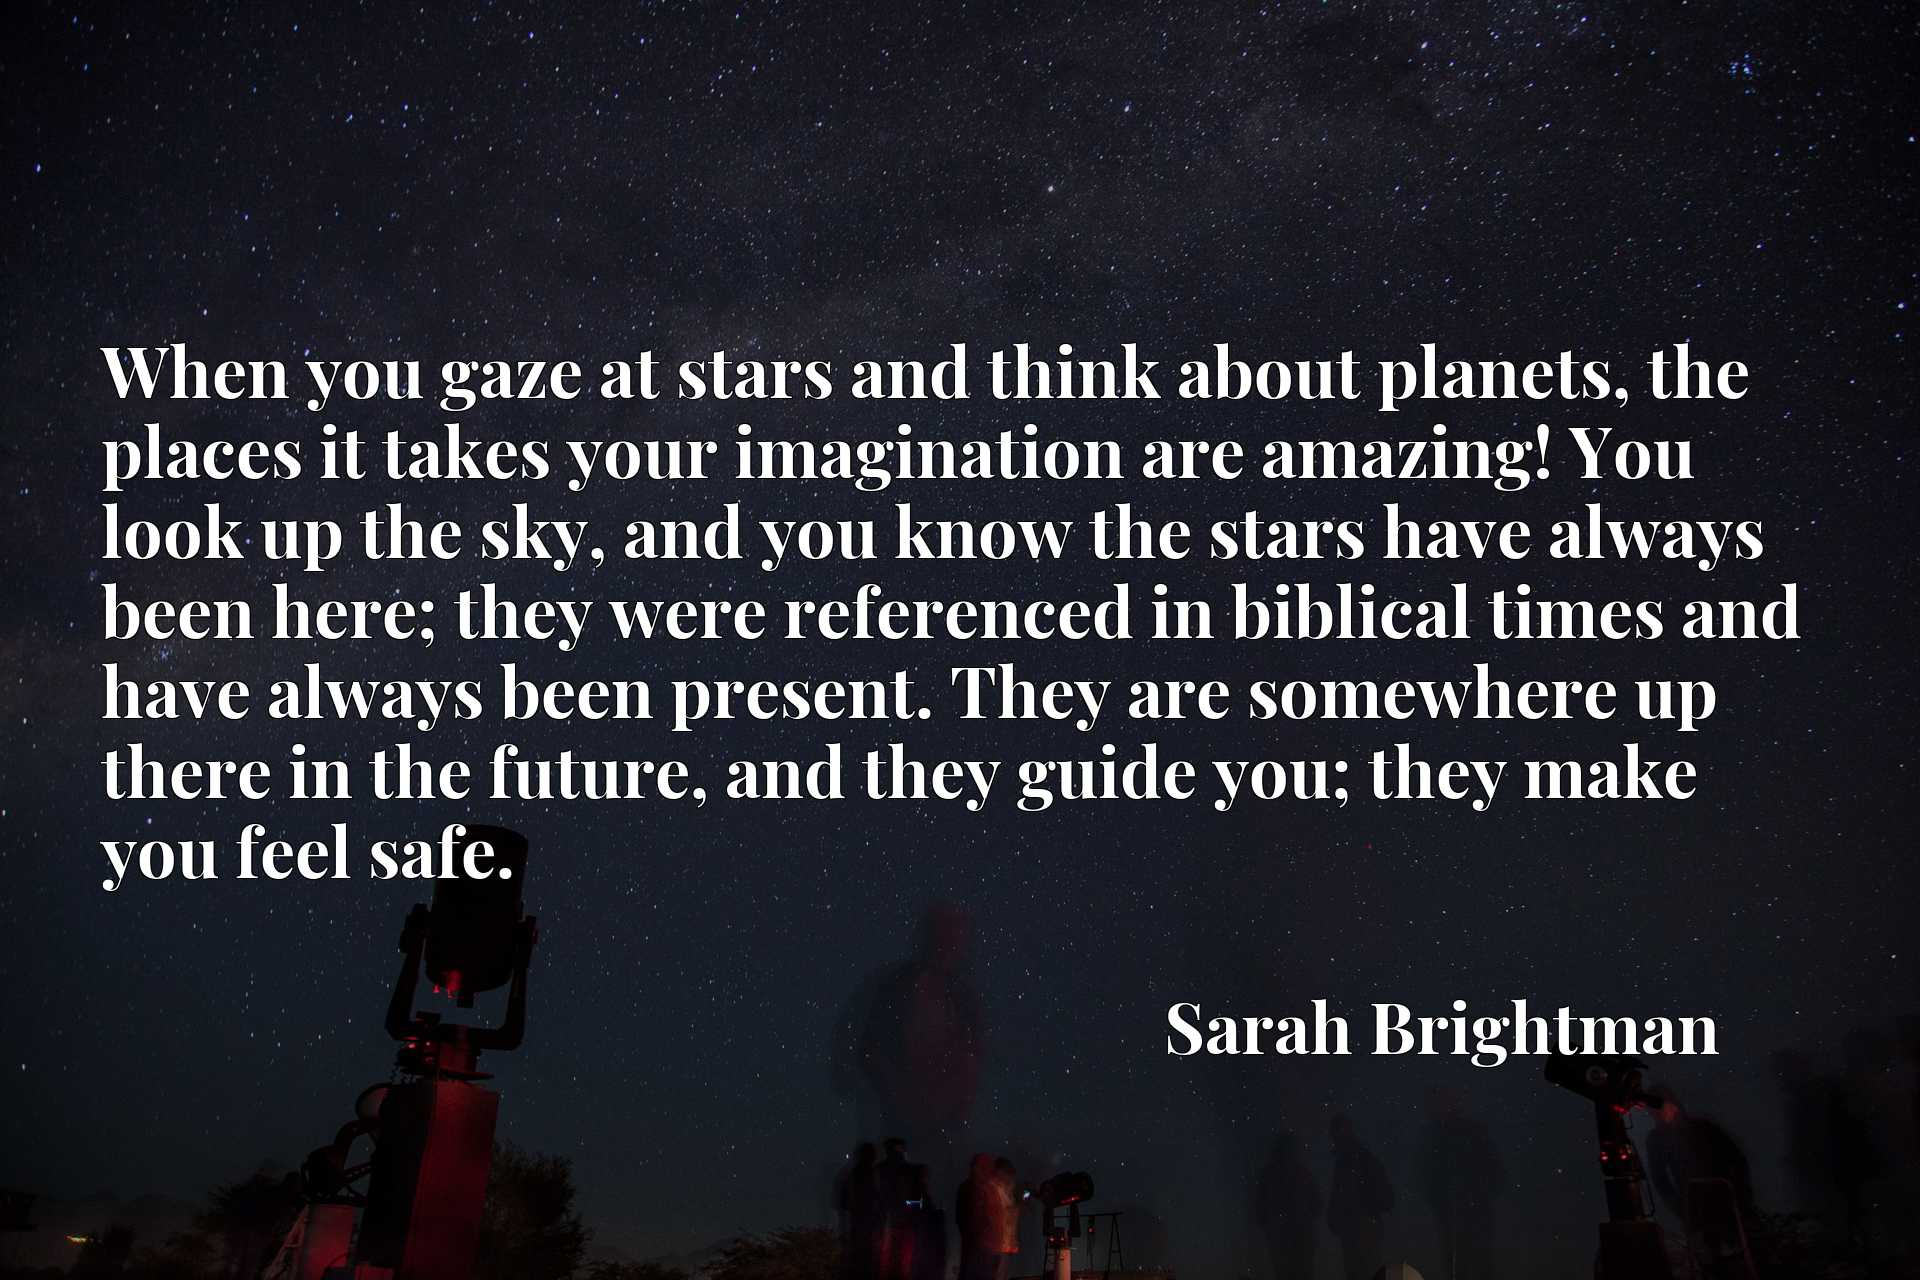 When you gaze at stars and think about planets, the places it takes your imagination are amazing! You look up the sky, and you know the stars have always been here; they were referenced in biblical times and have always been present. They are somewhere up there in the future, and they guide you; they make you feel safe.